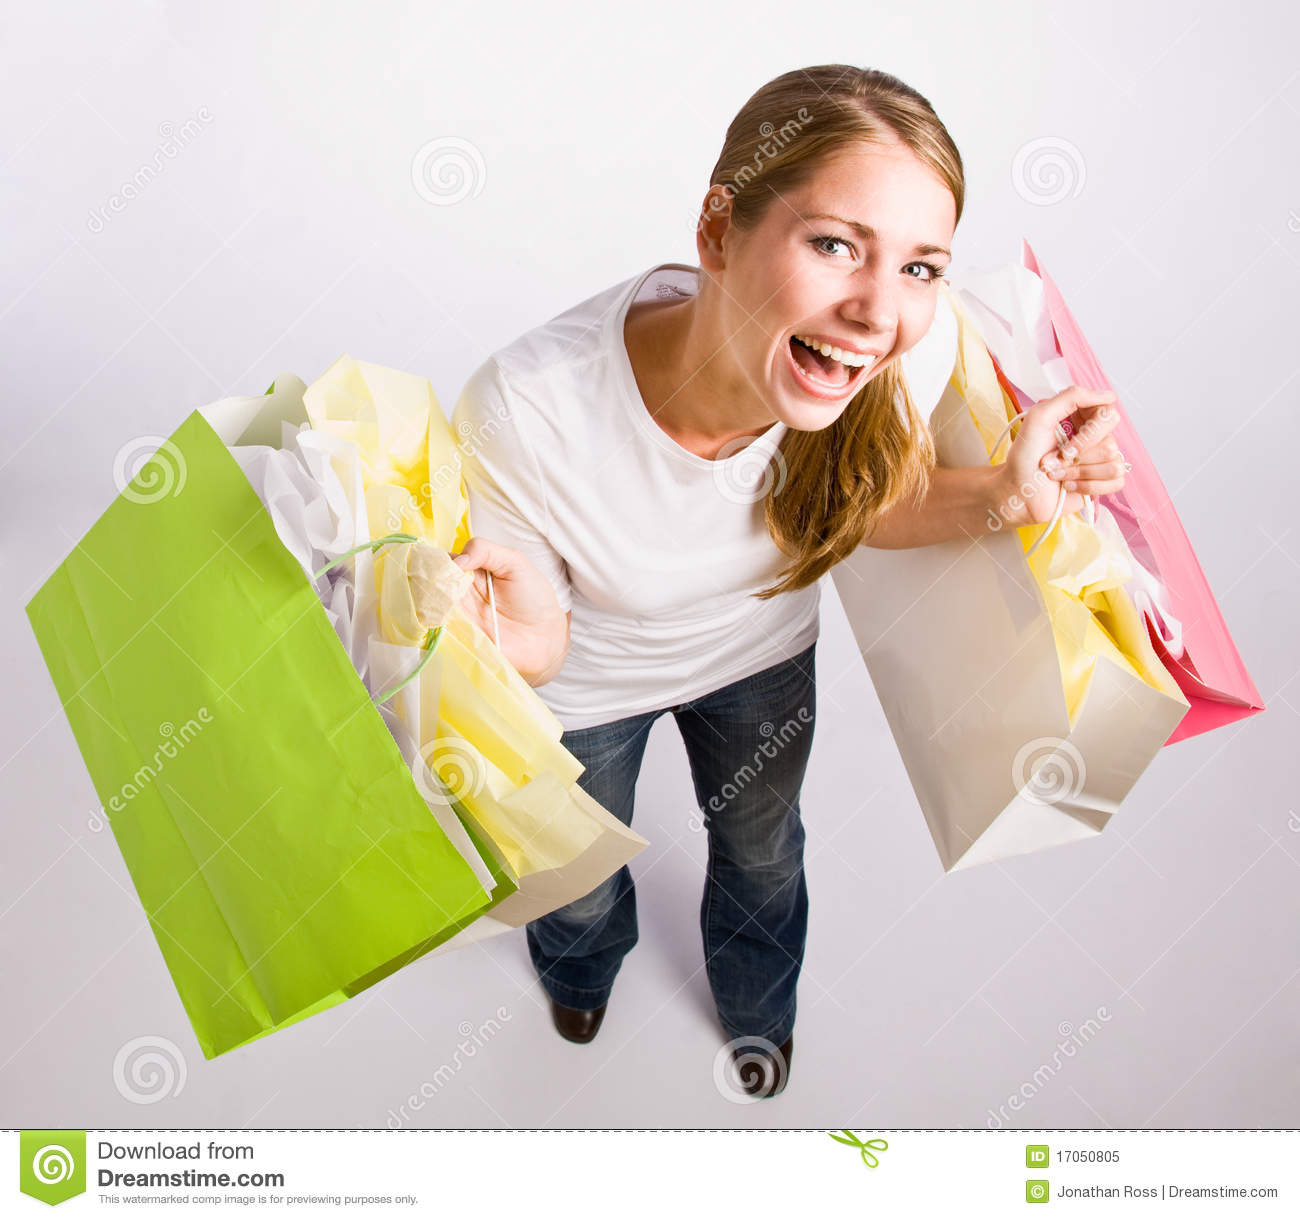 Elegant Woman Holding Large Bag Of Healthly Groceries Stock Photo - Image 38991728